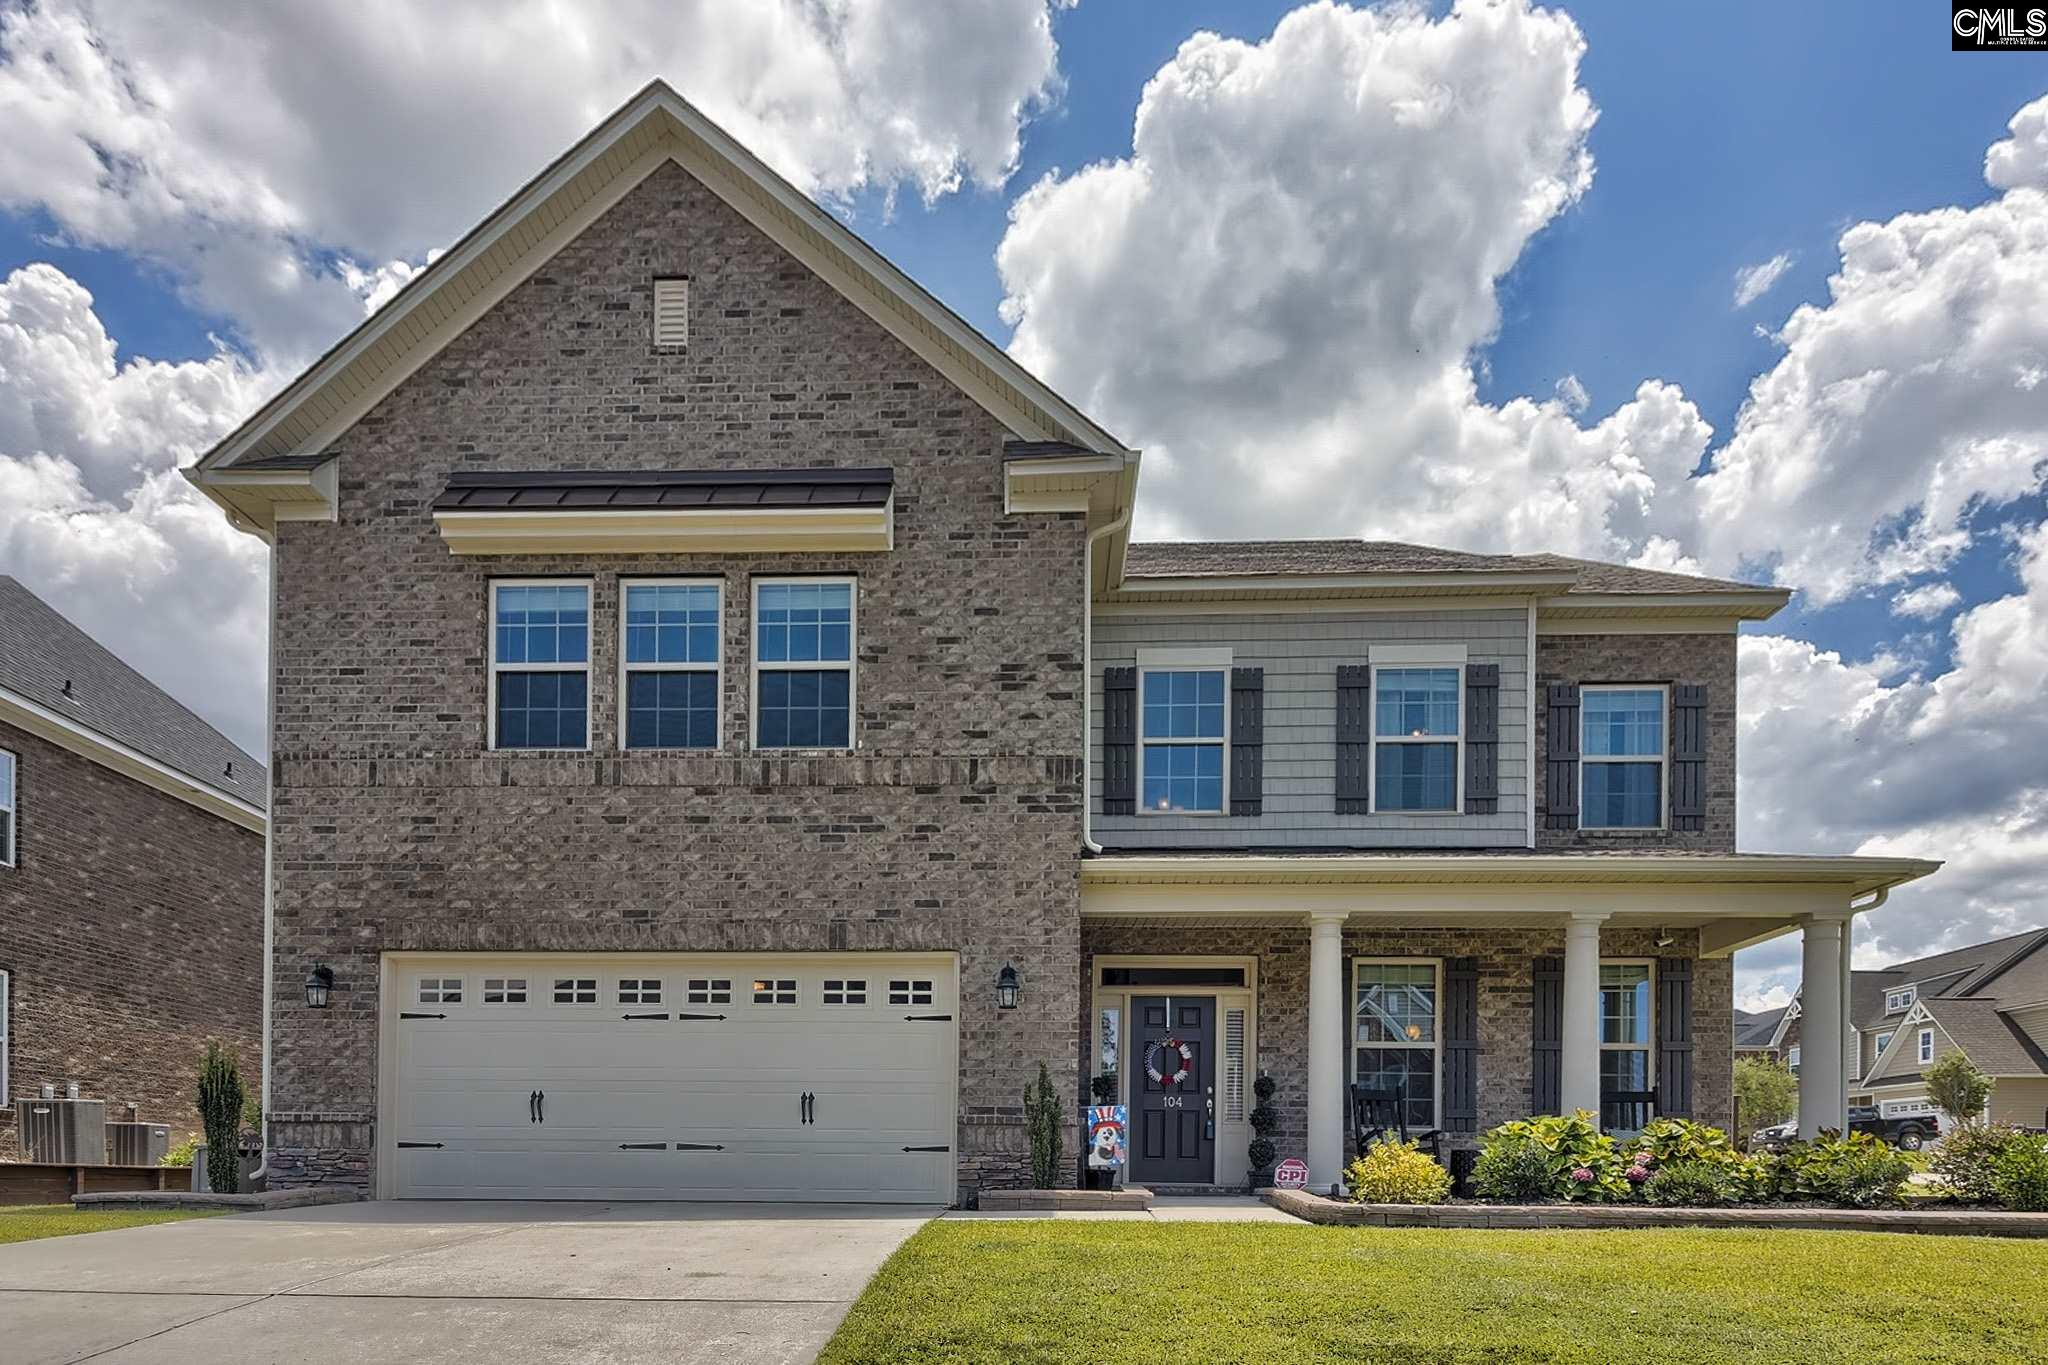 104 Pheasant Glen Lexington, SC 29072